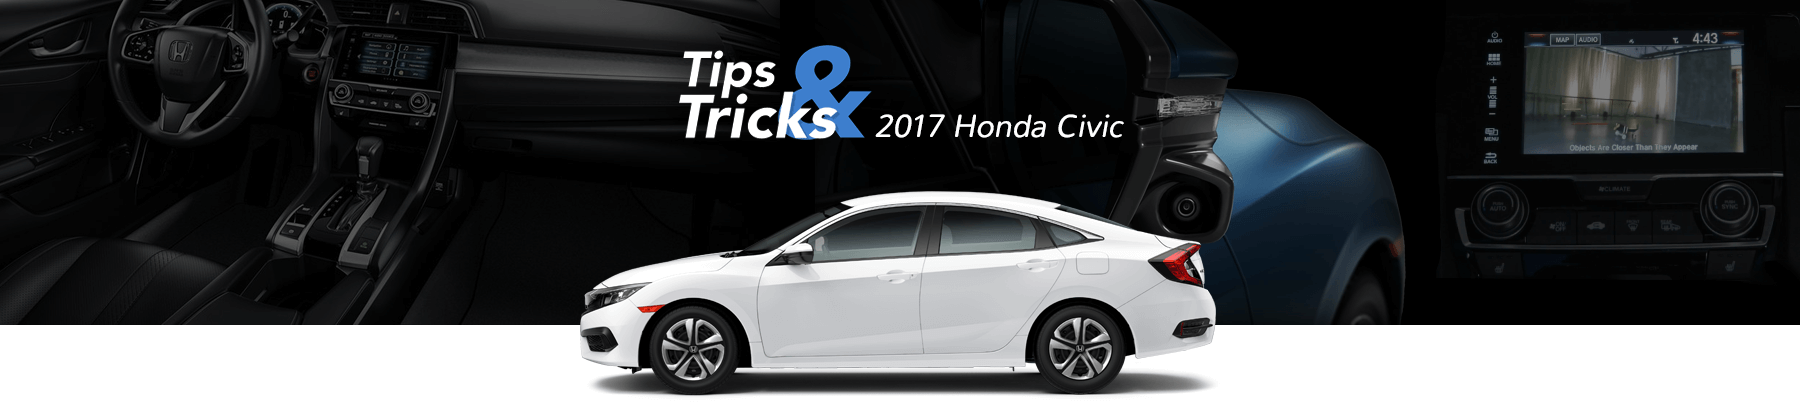 2017 Honda Civic Tips & Tricks Banner